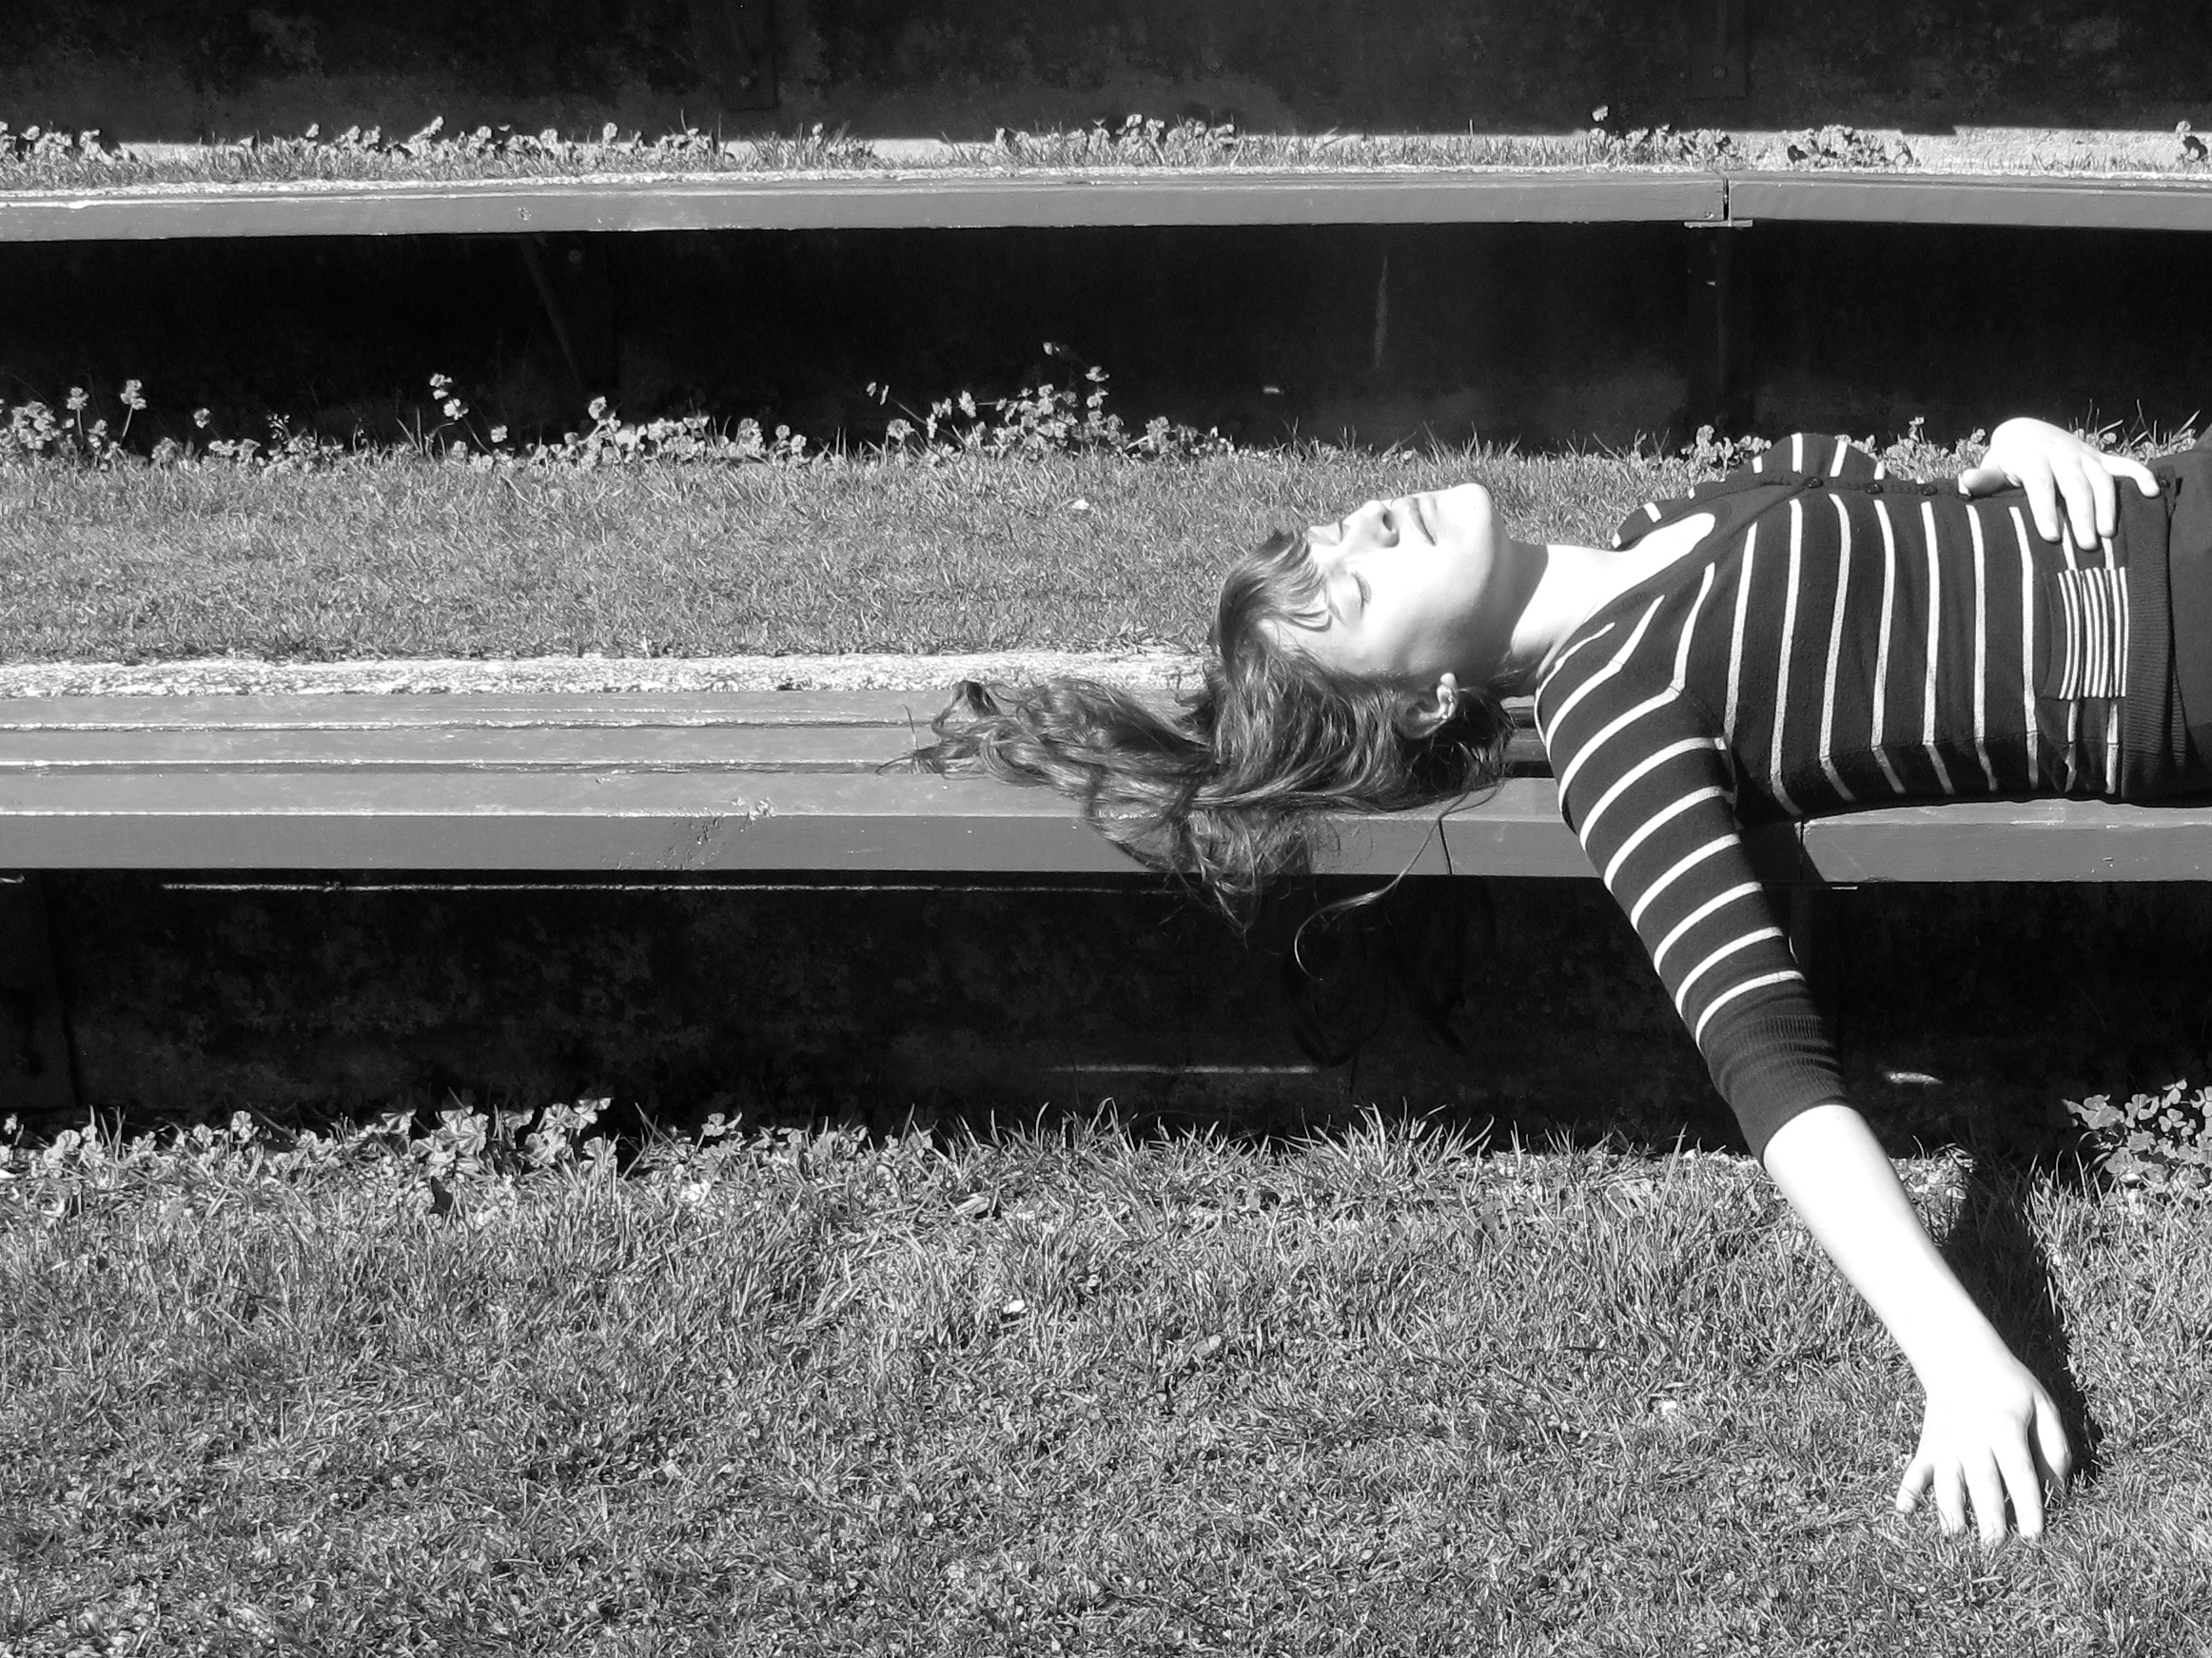 Lying on the benches in the sun